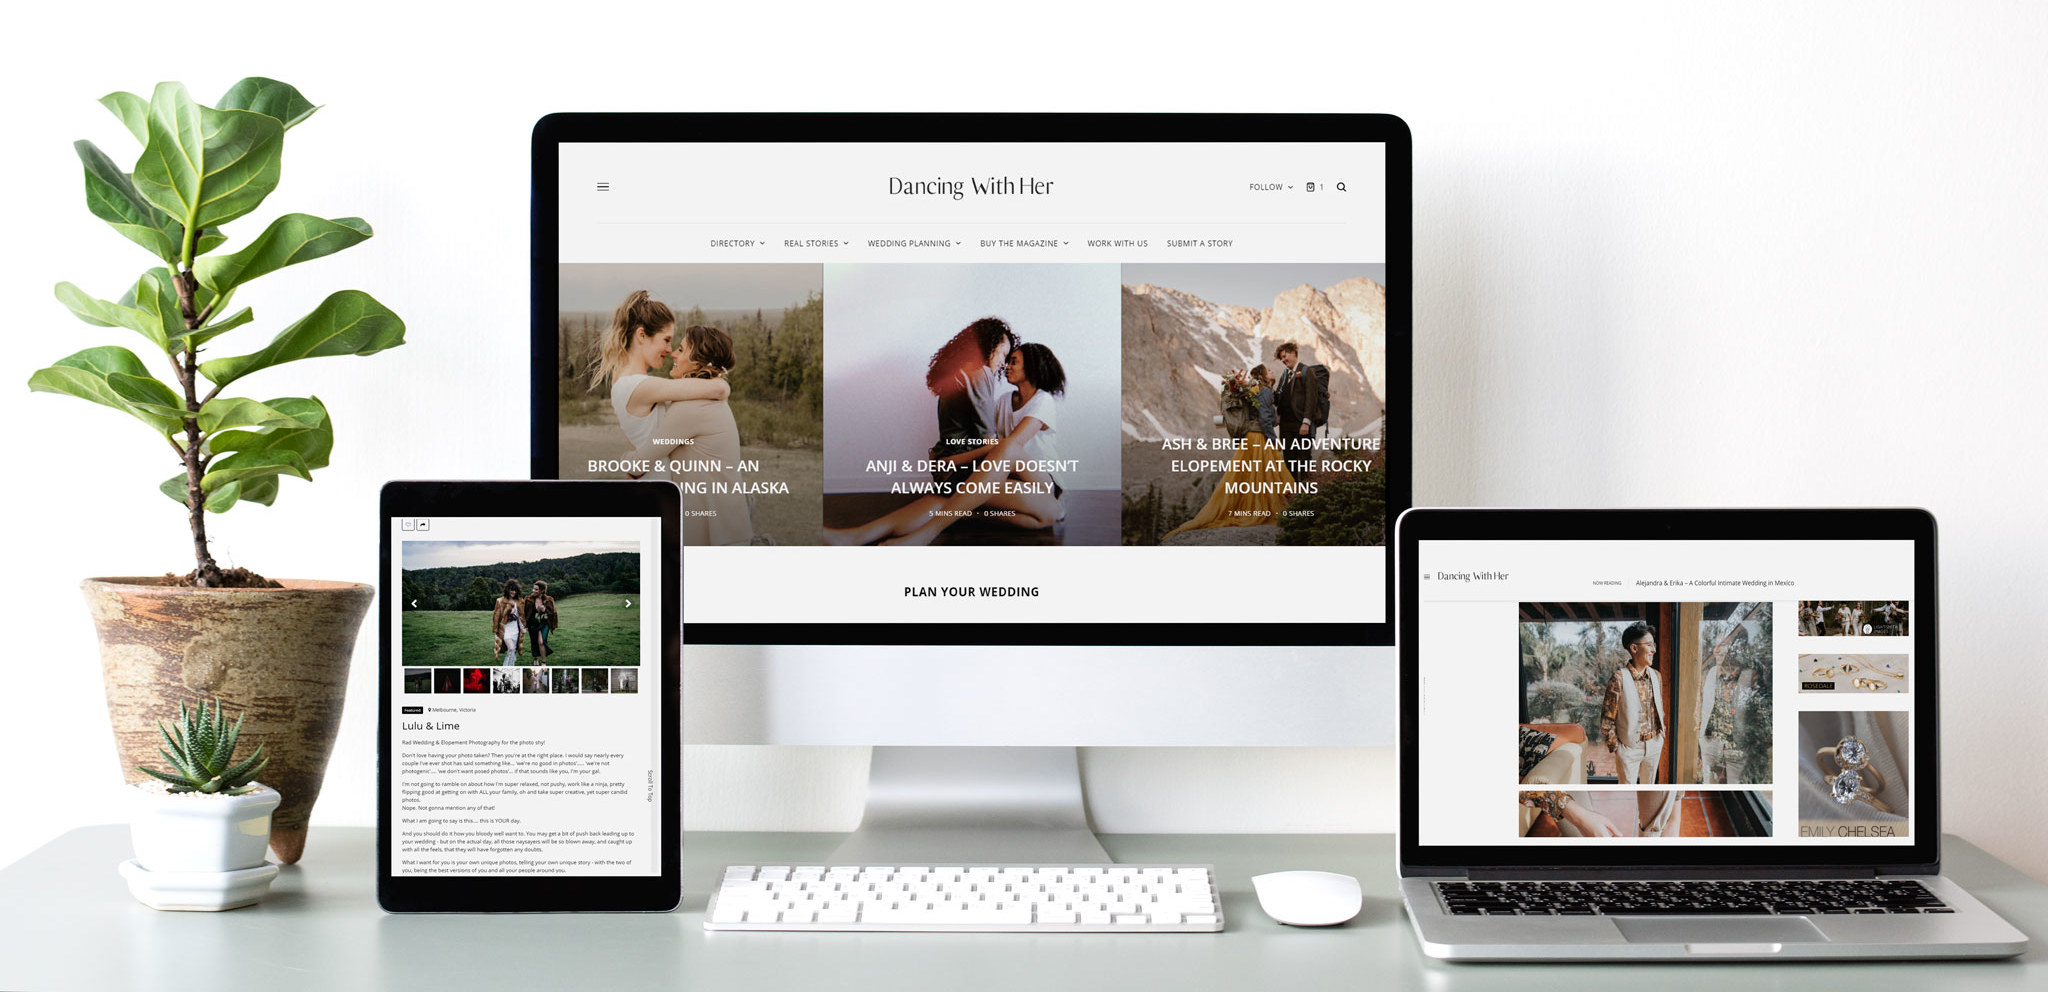 Dancing With Her Lesbian Two brides gay queer couple love wedding online directory magazine website-advertising-mockups